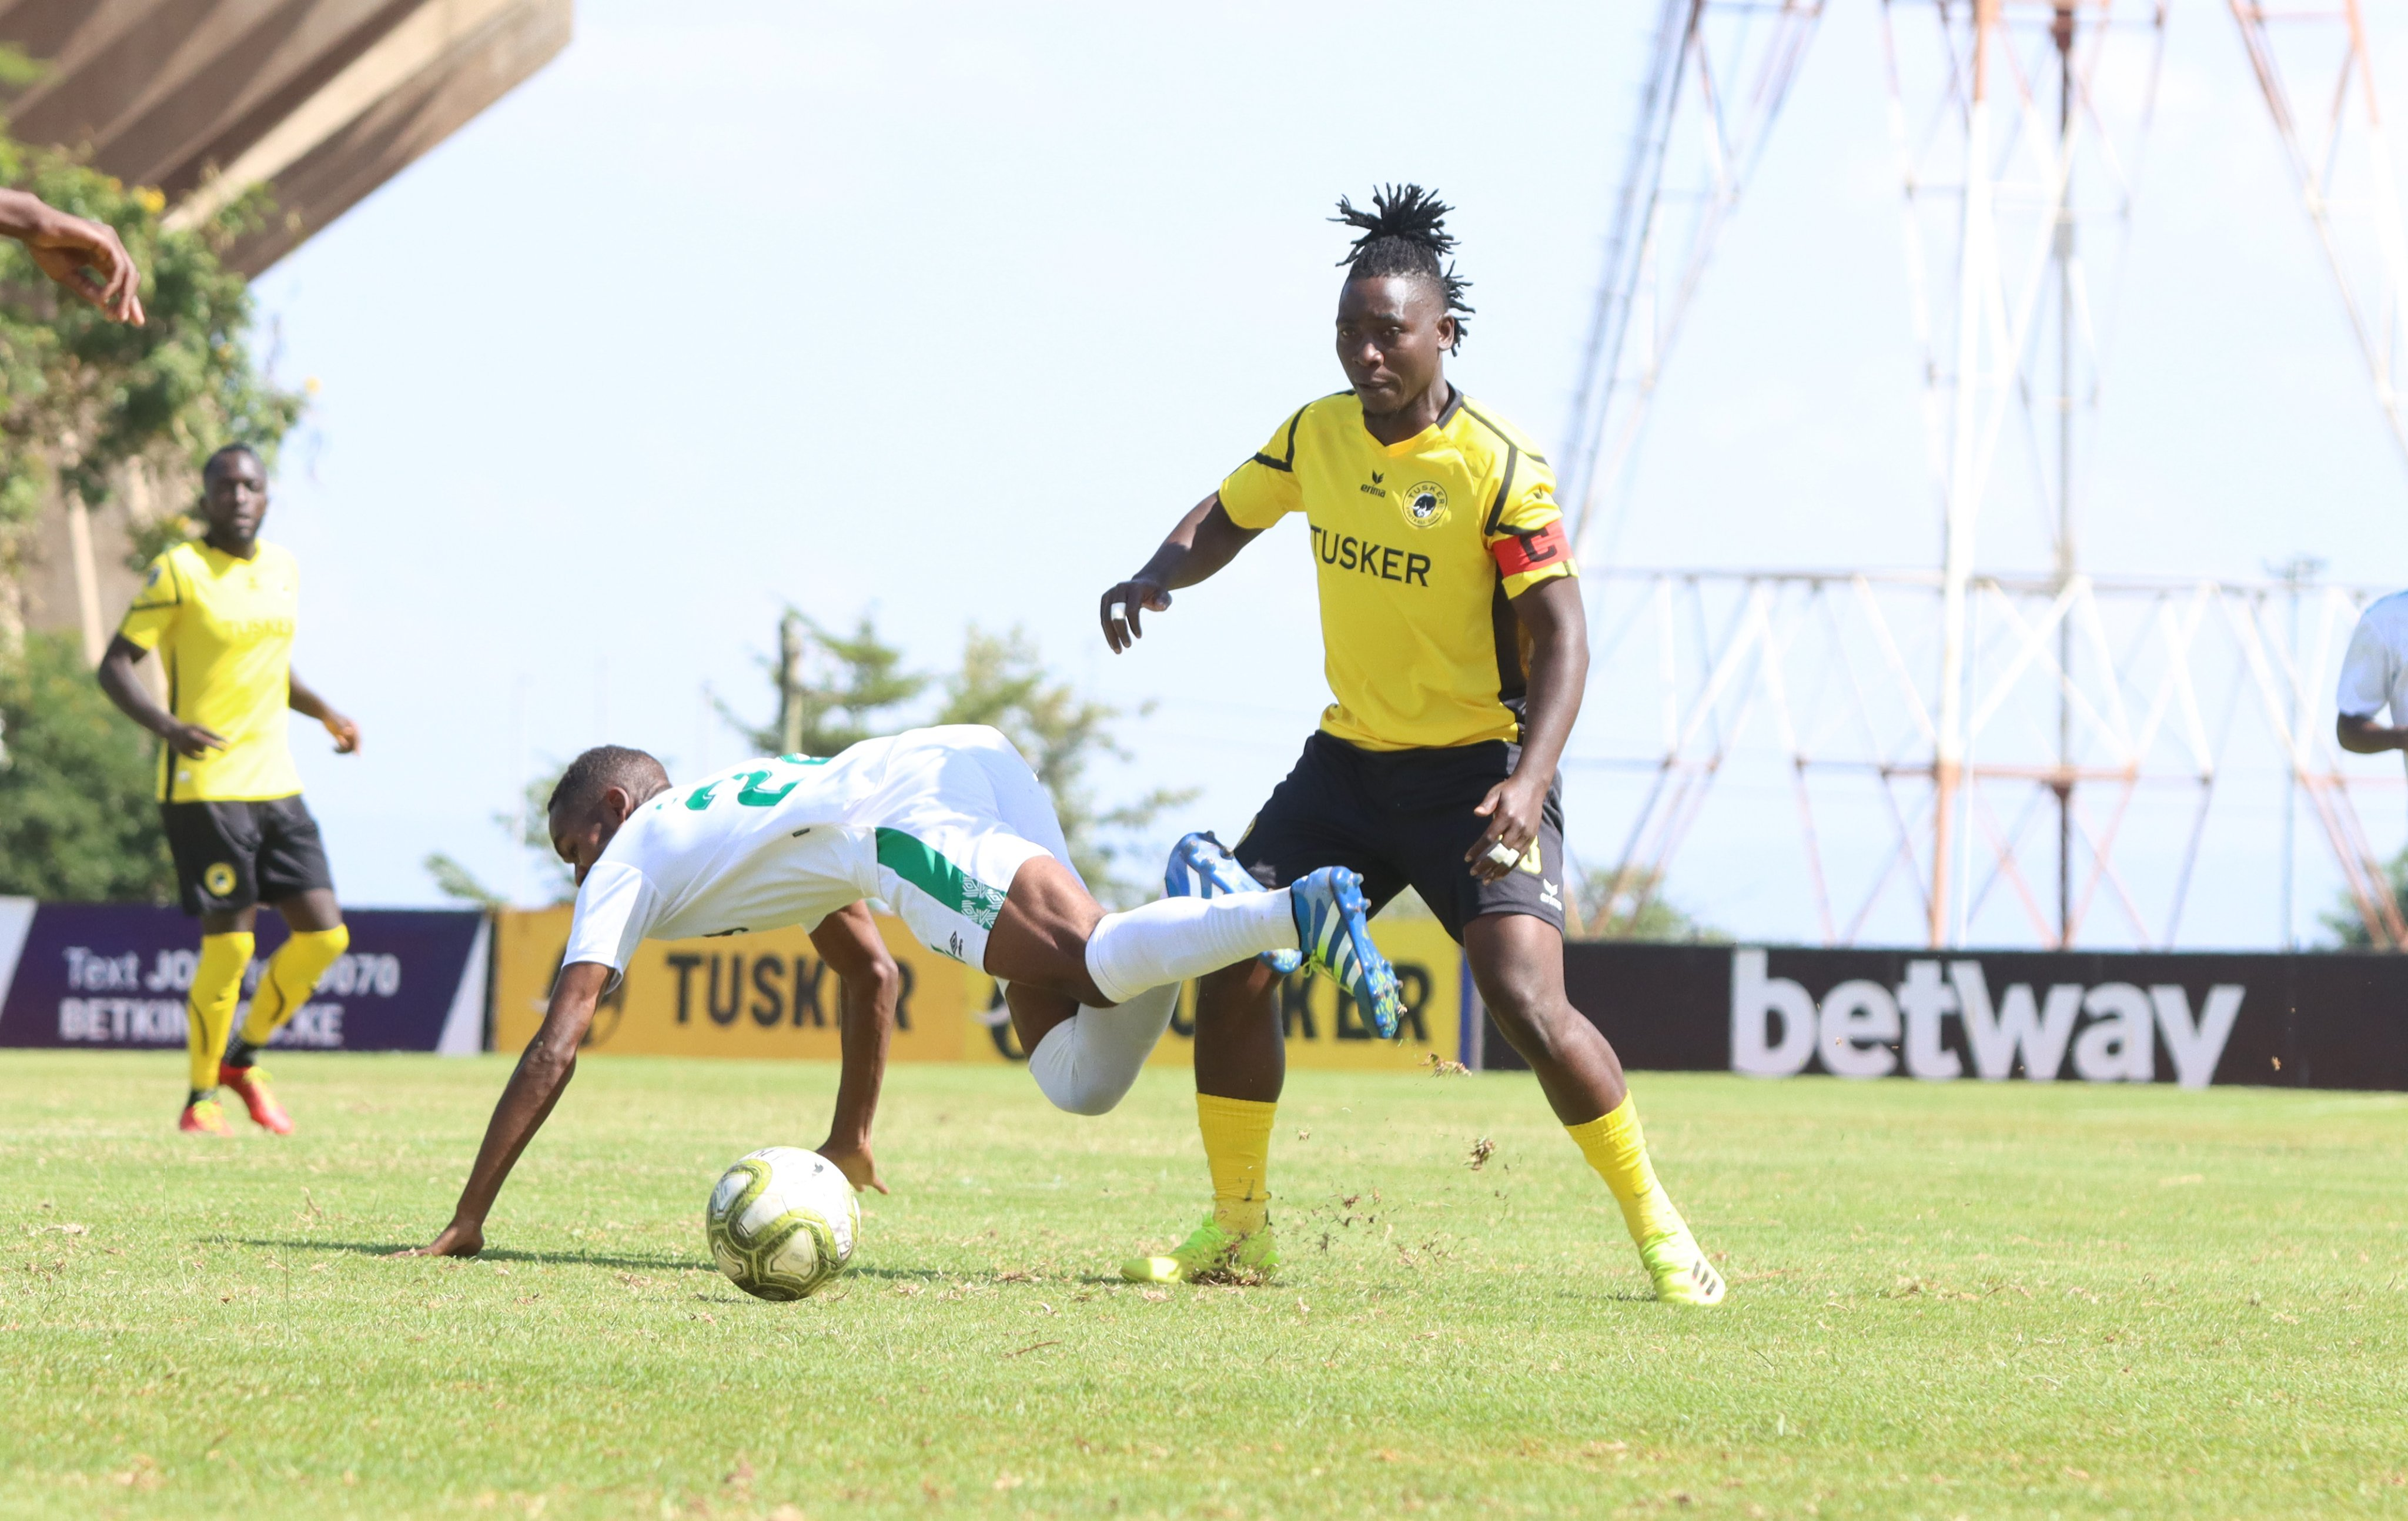 FKFPL Saturday Round Up: Goals and cards galore as Tusker end Sharks unbeaten streak